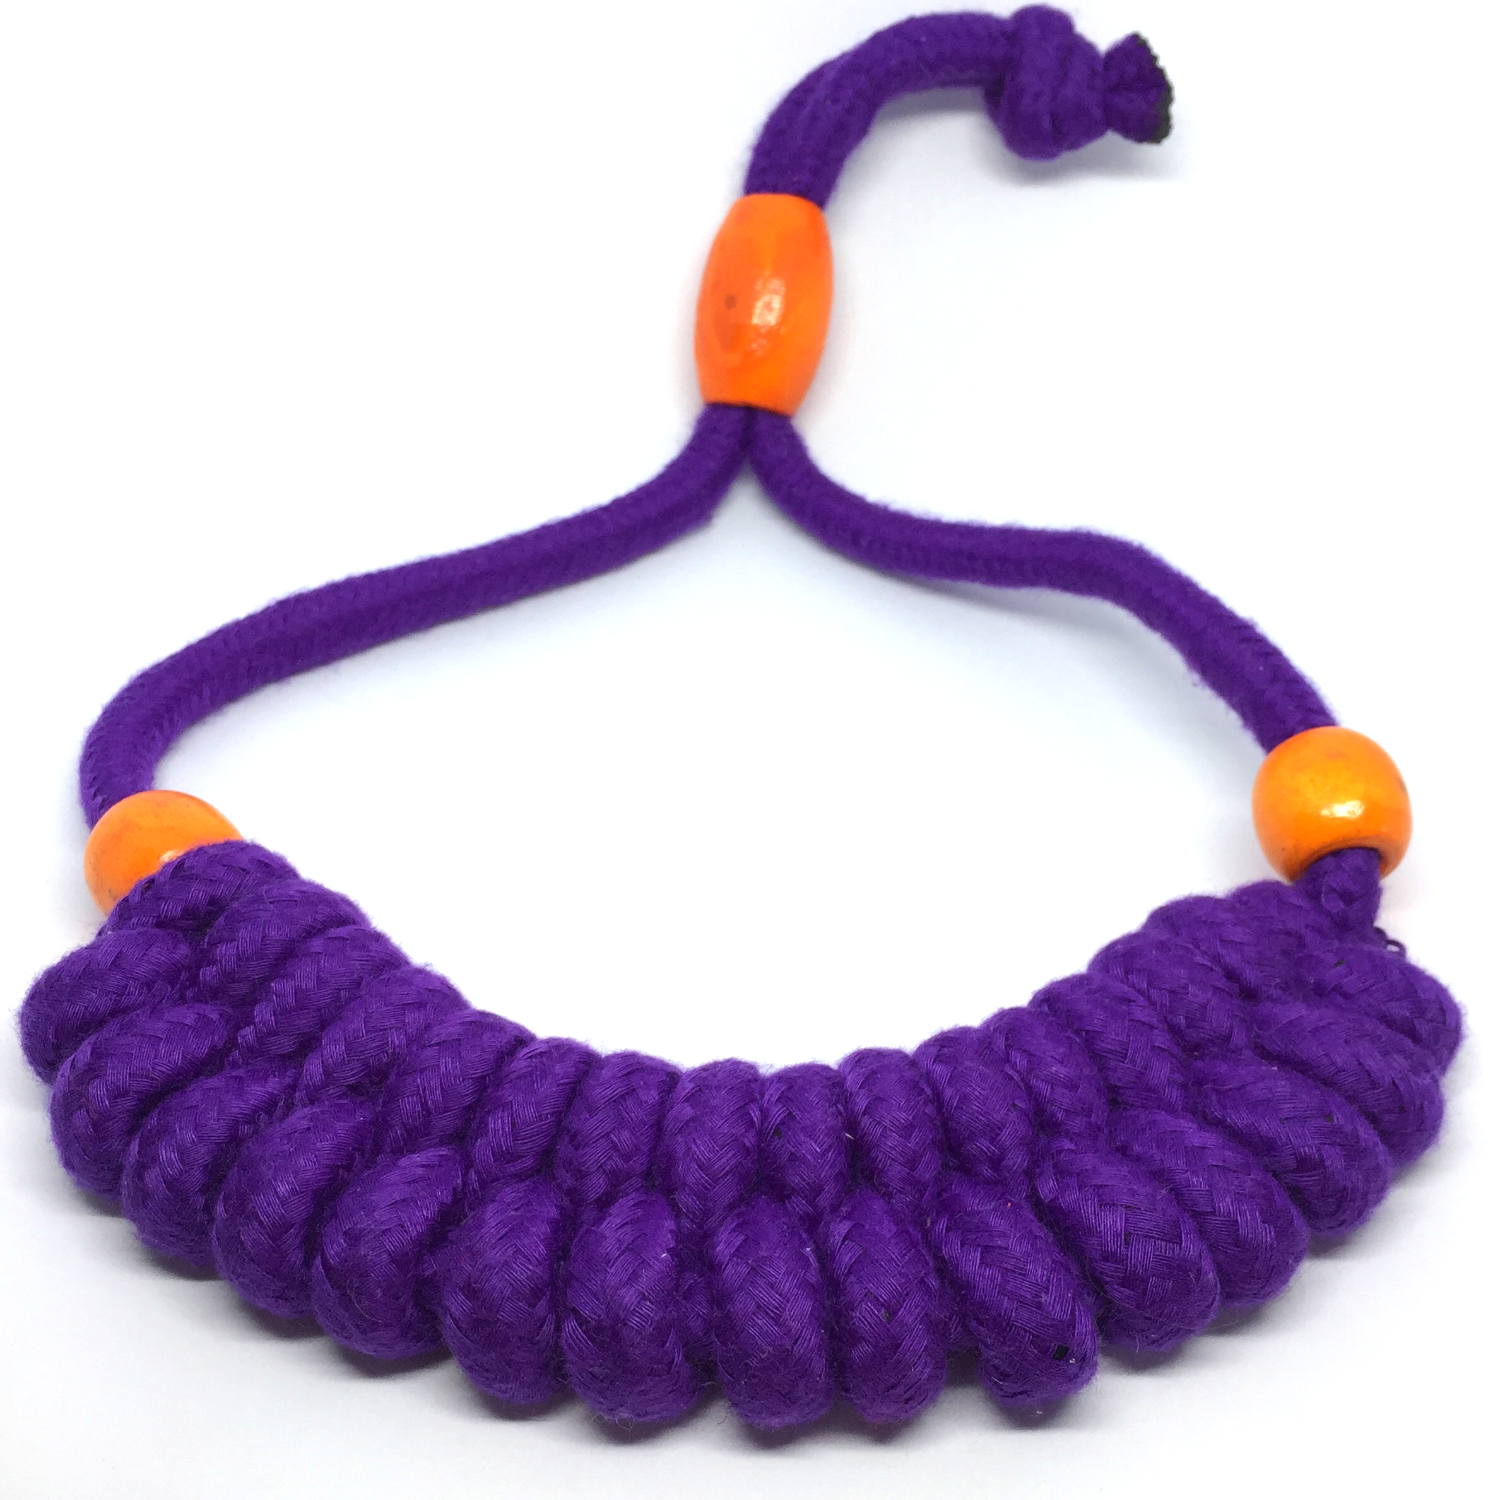 Purple braided necklace with orange beads